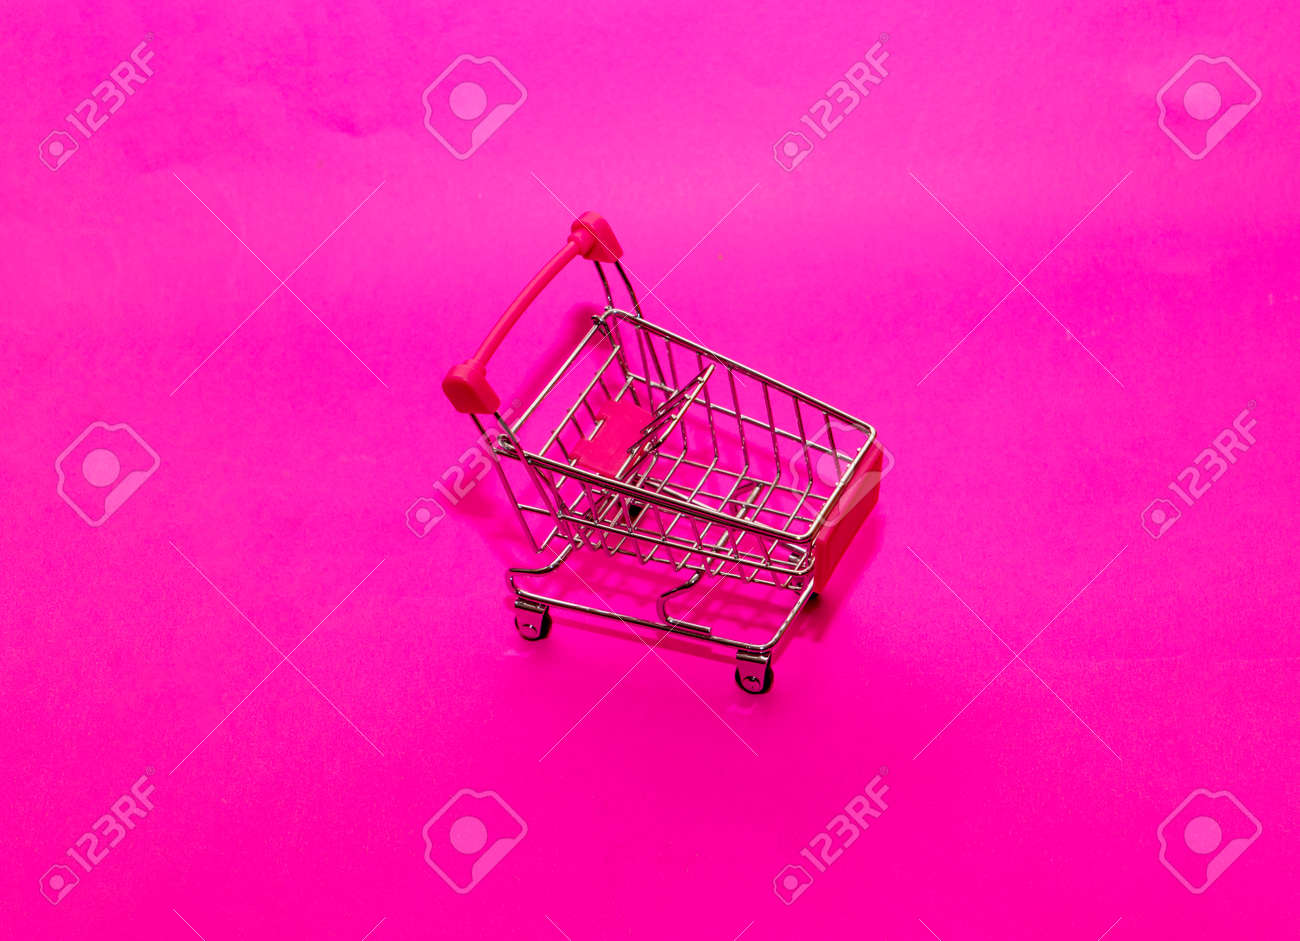 empty shopping cart on pink background. Shopping concept - 141039412